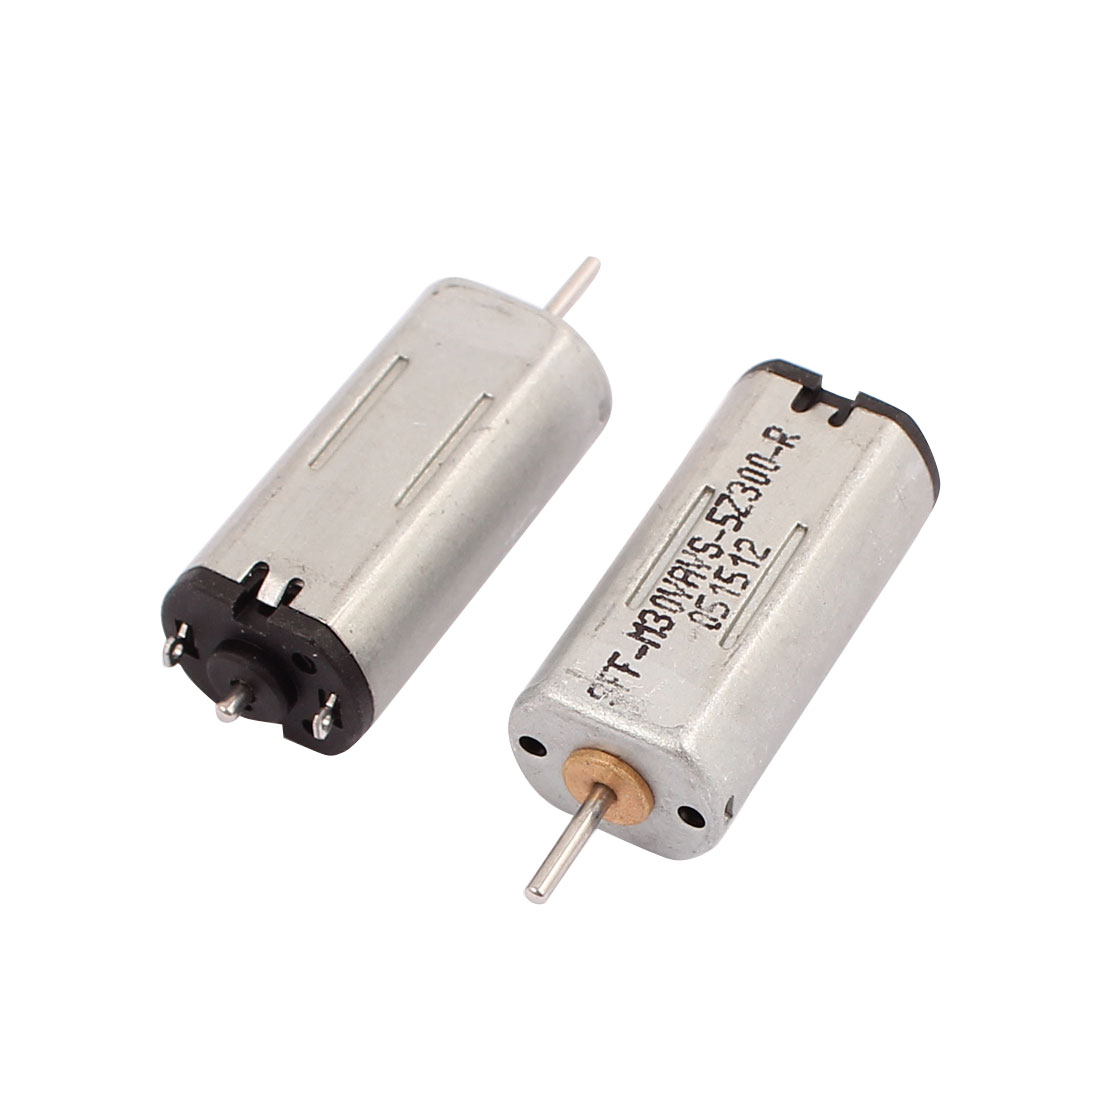 2Pcs DC 1.5-6V 26500RPM Large Torque Strong Magnet Micro DC Motor for Electric Massage